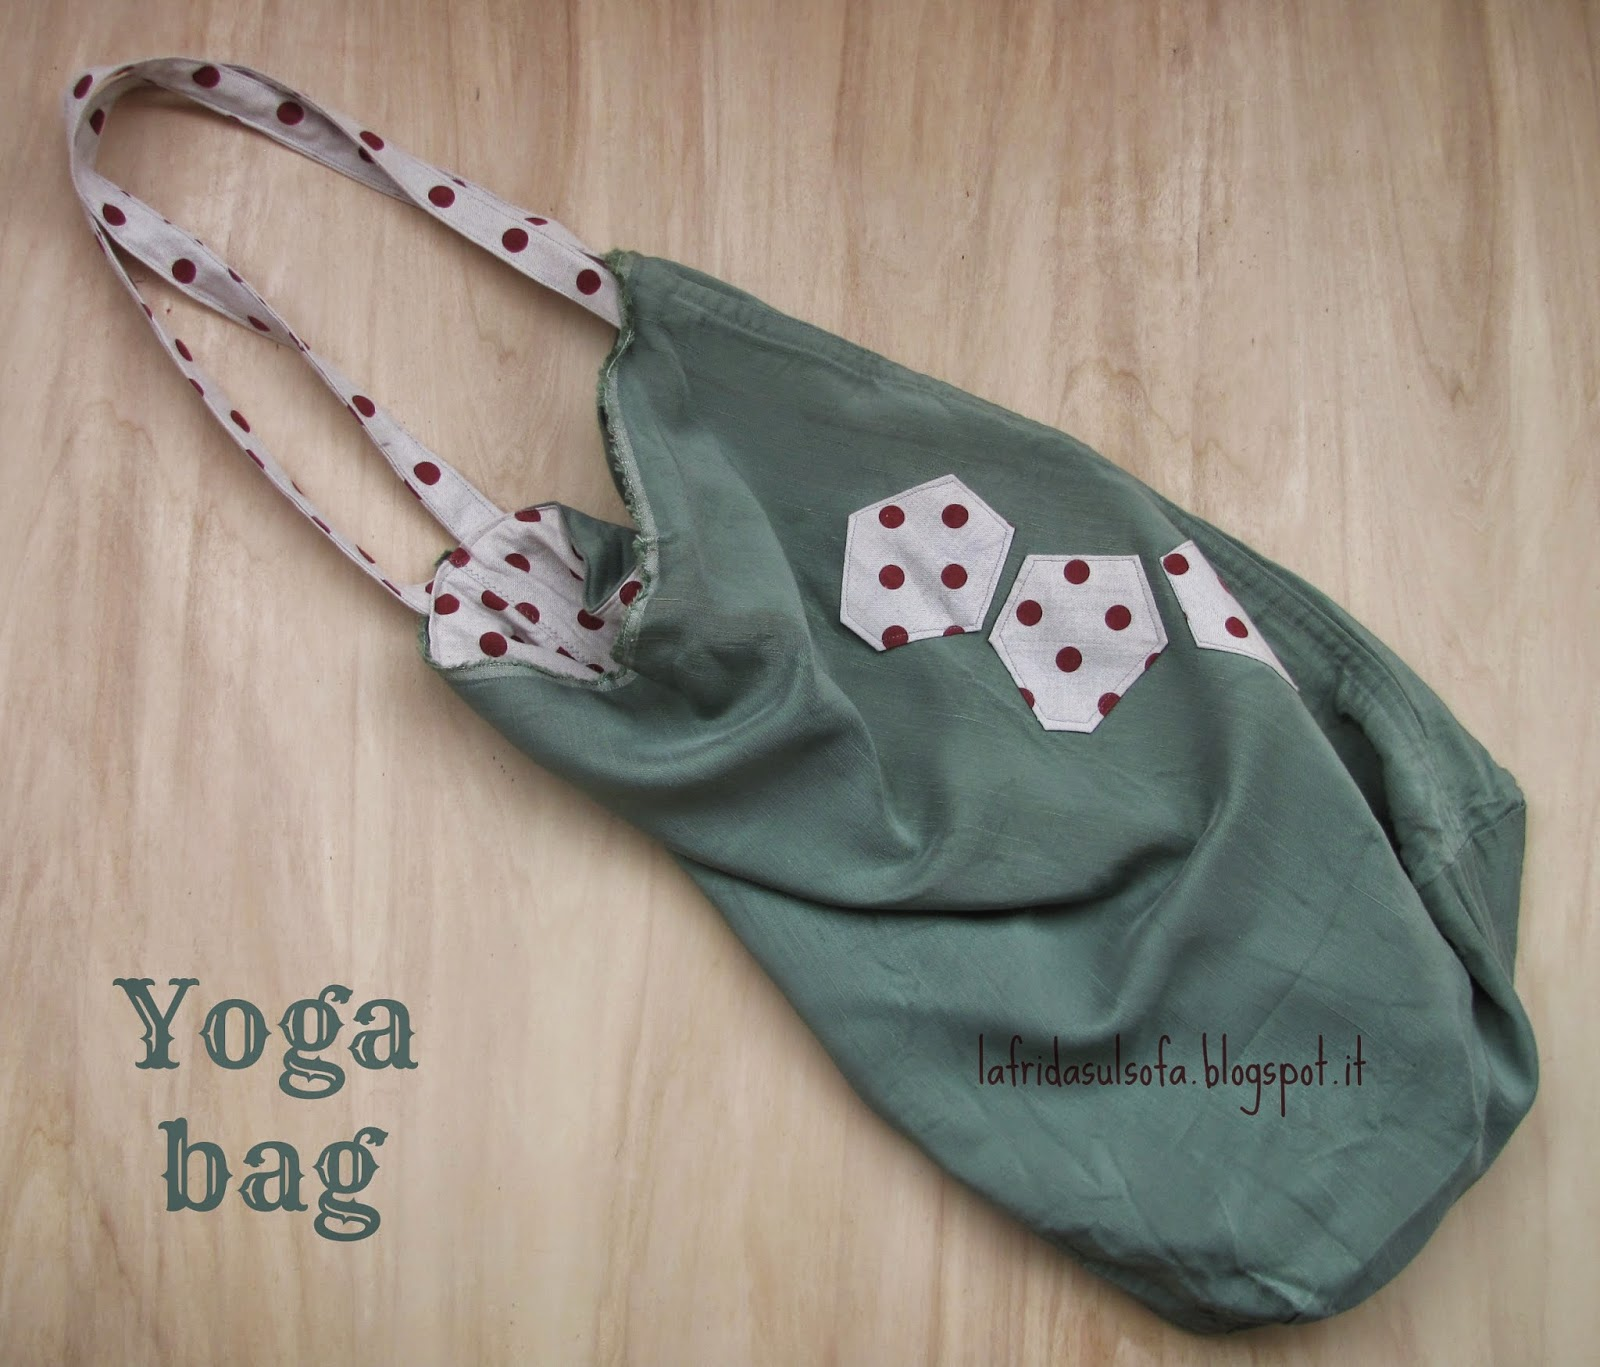 La Frida sul sofà: yoga bag a pois a due tasche - two pockets polka dotted yoga bag